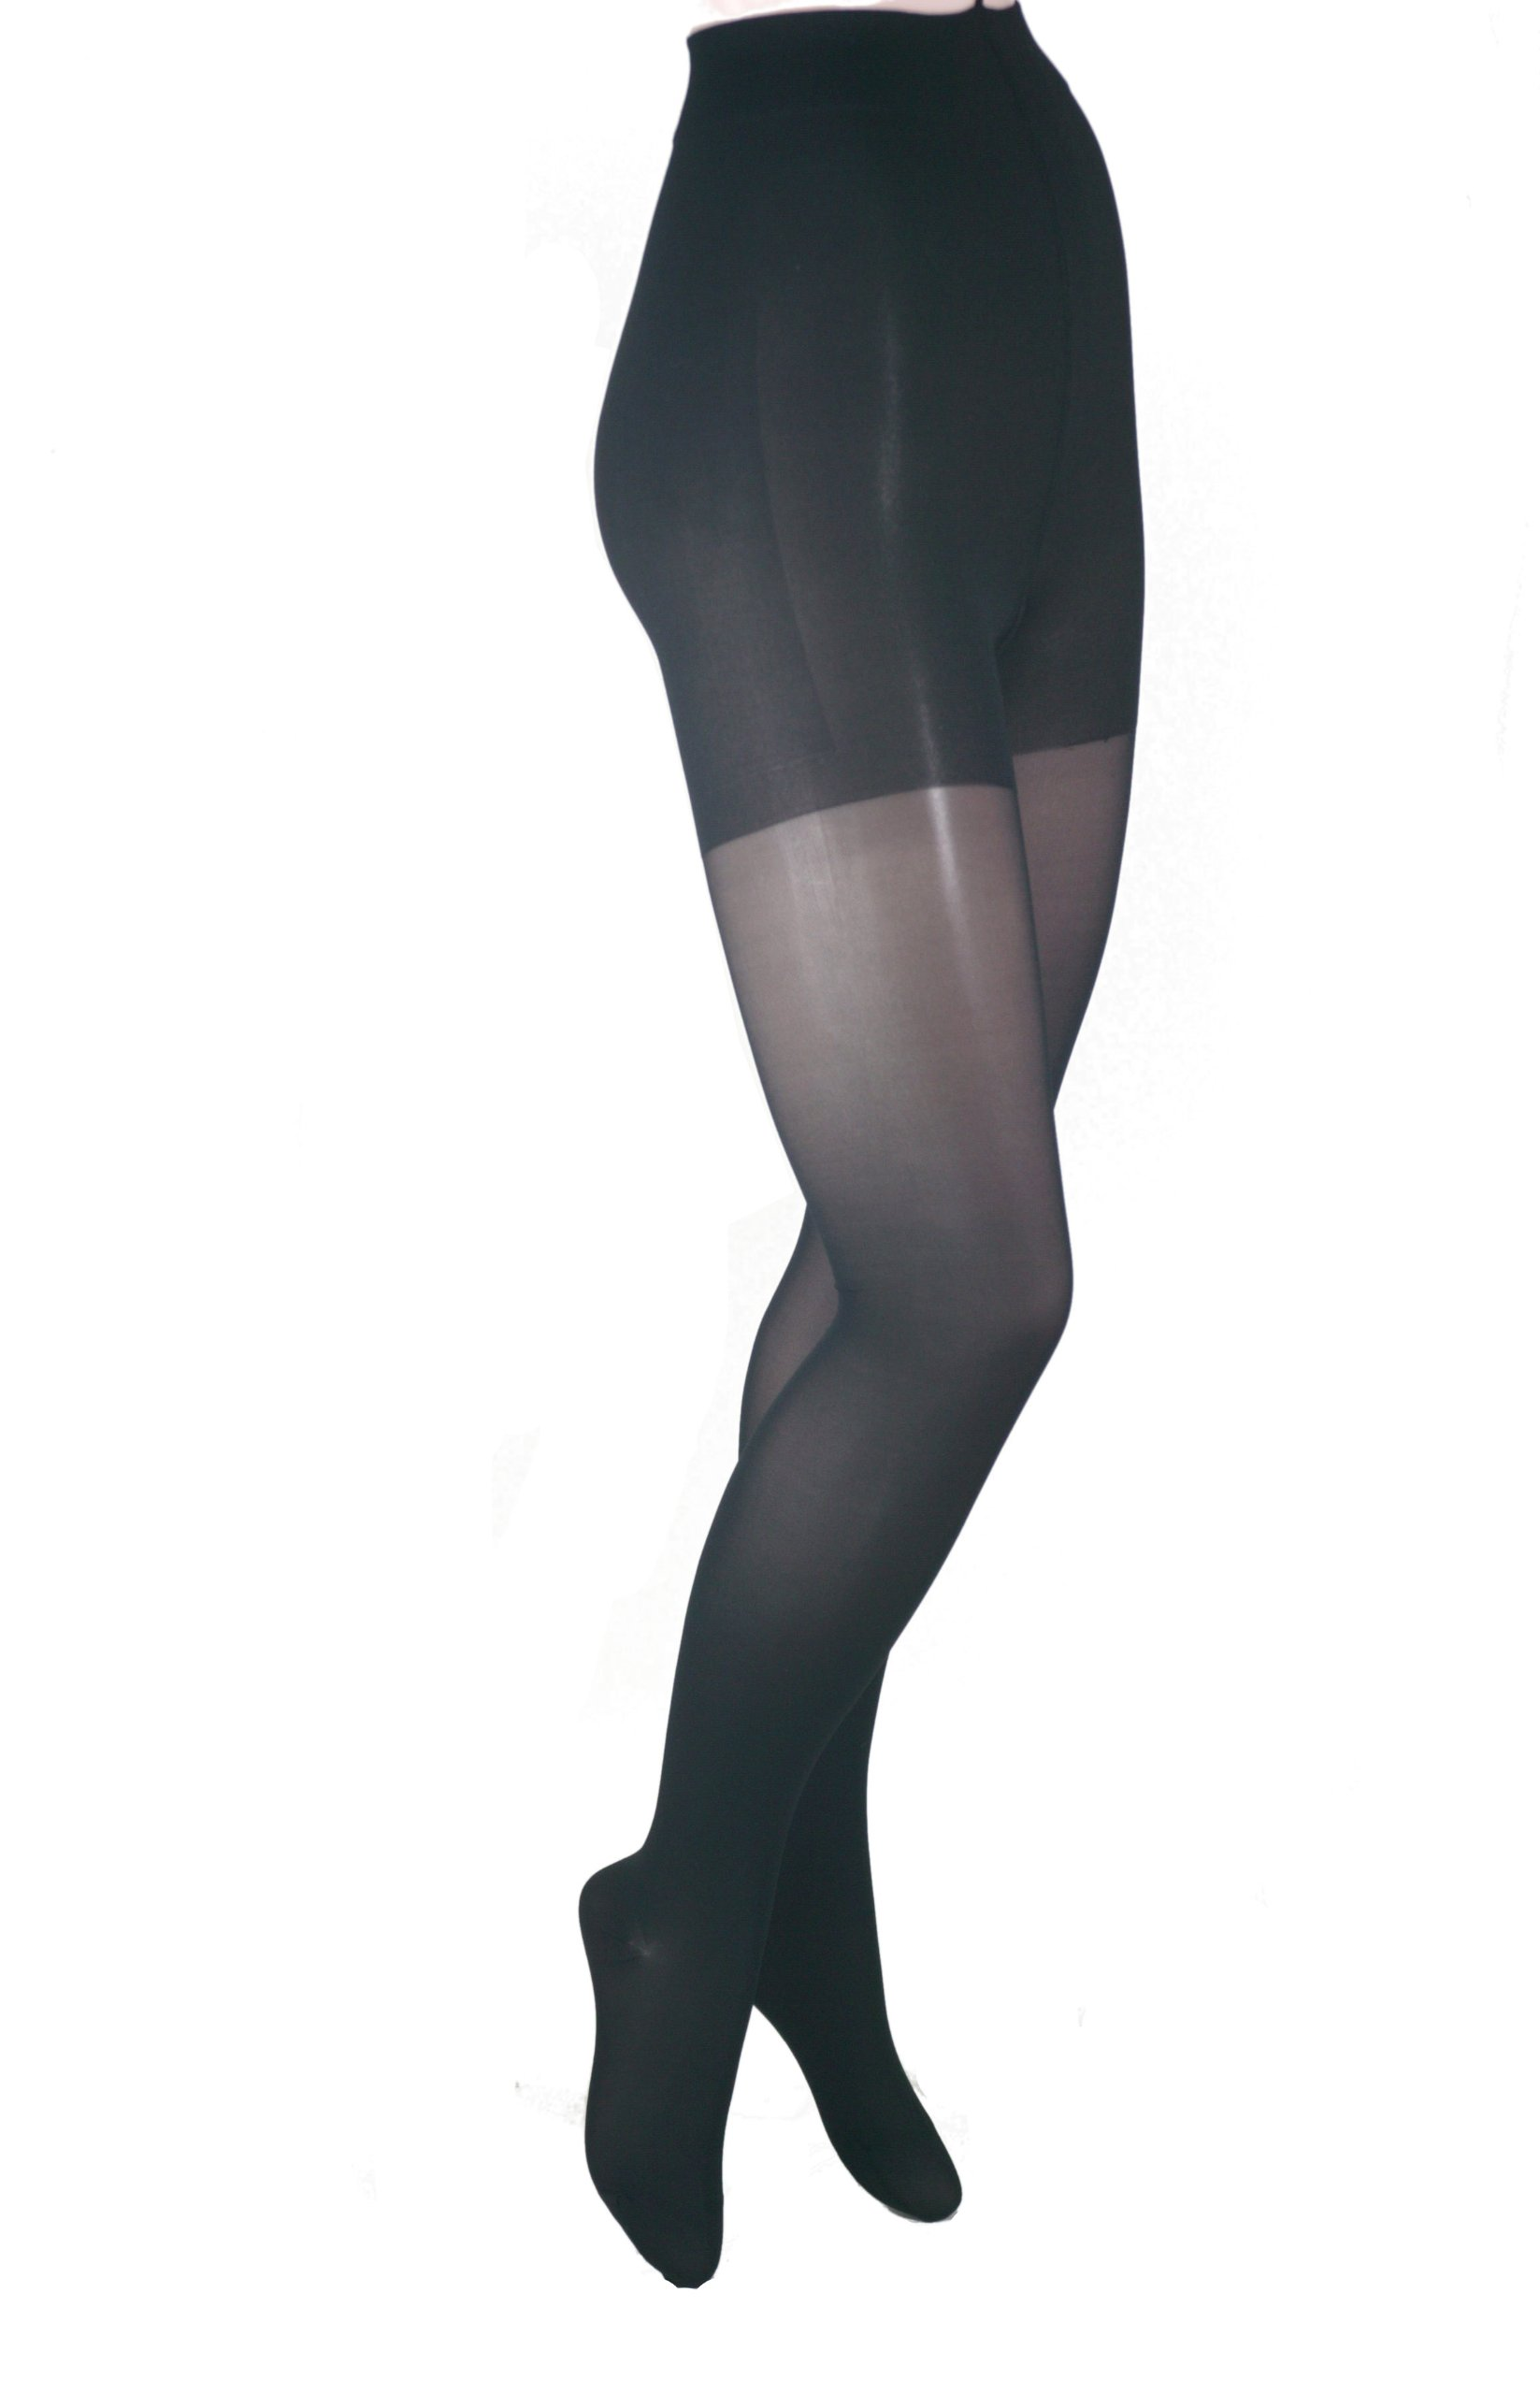 ITA-MED Sheer Pantyhose, Compression (20-22 mmHg) Black, X-Tall, 2 Count